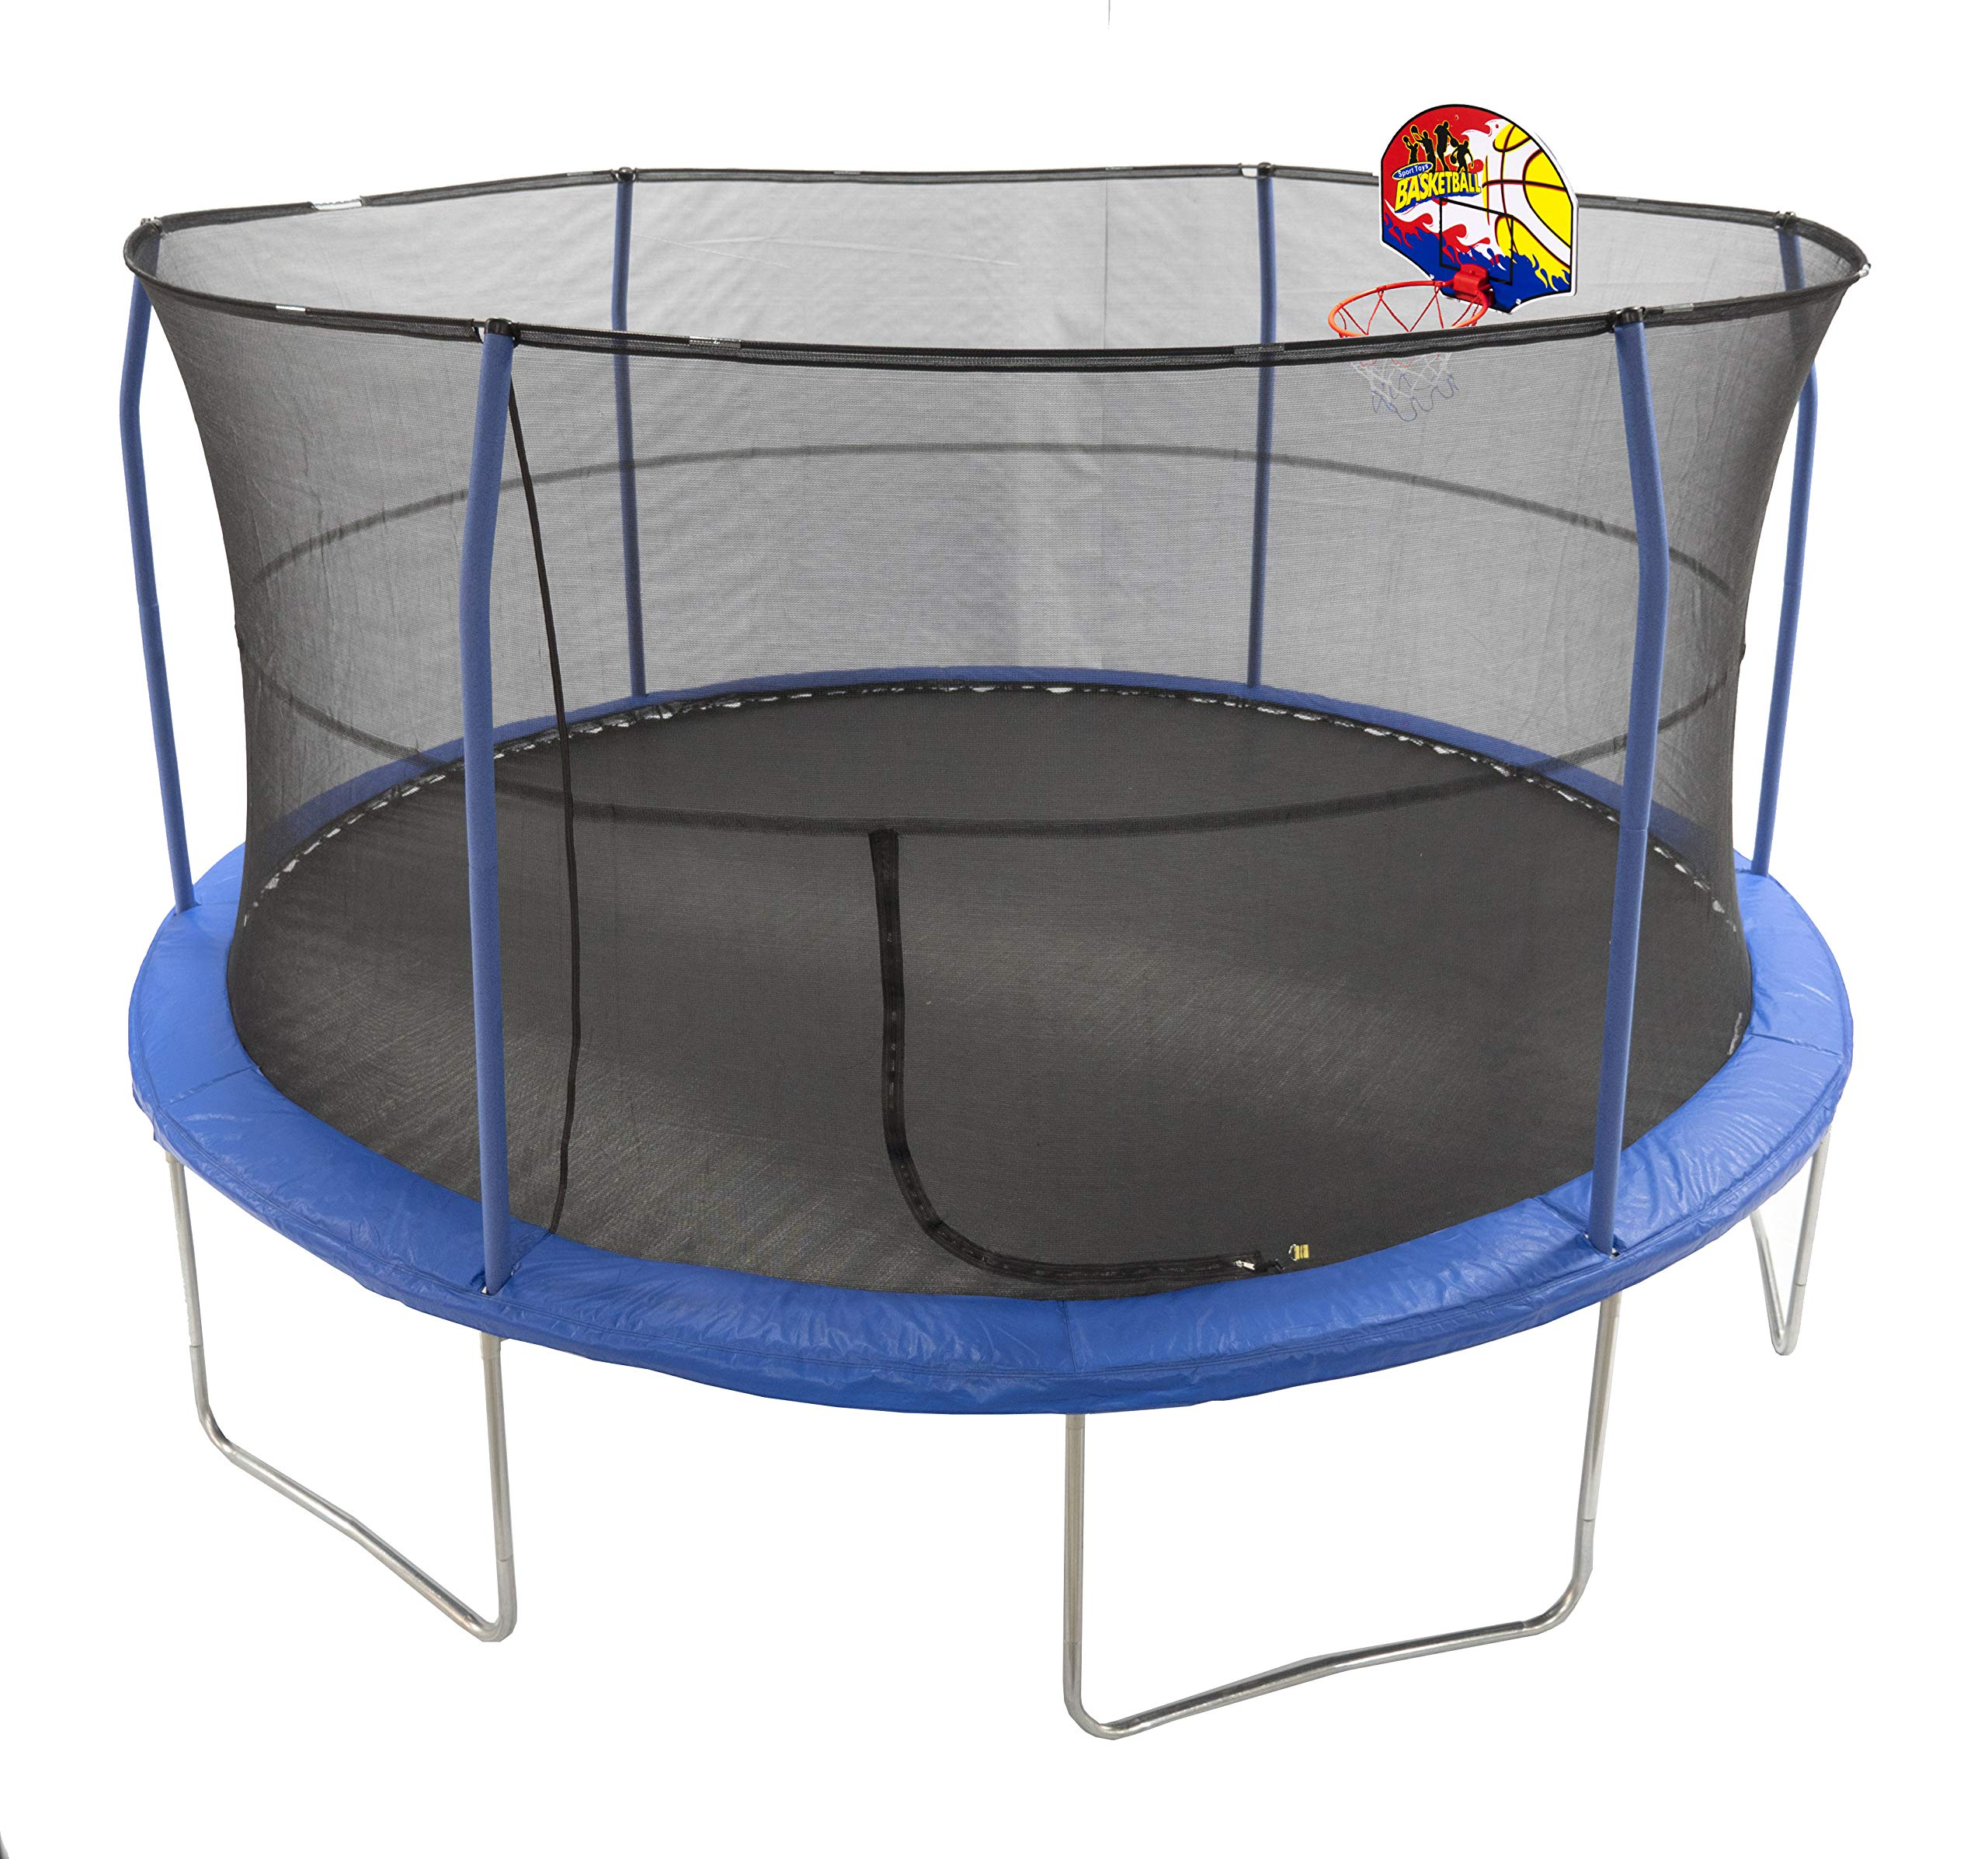 JumpKing 15' Bounce N' Dunk Trampoline & Enclosure Combo with Basketball Hoop Blue by JumpKing